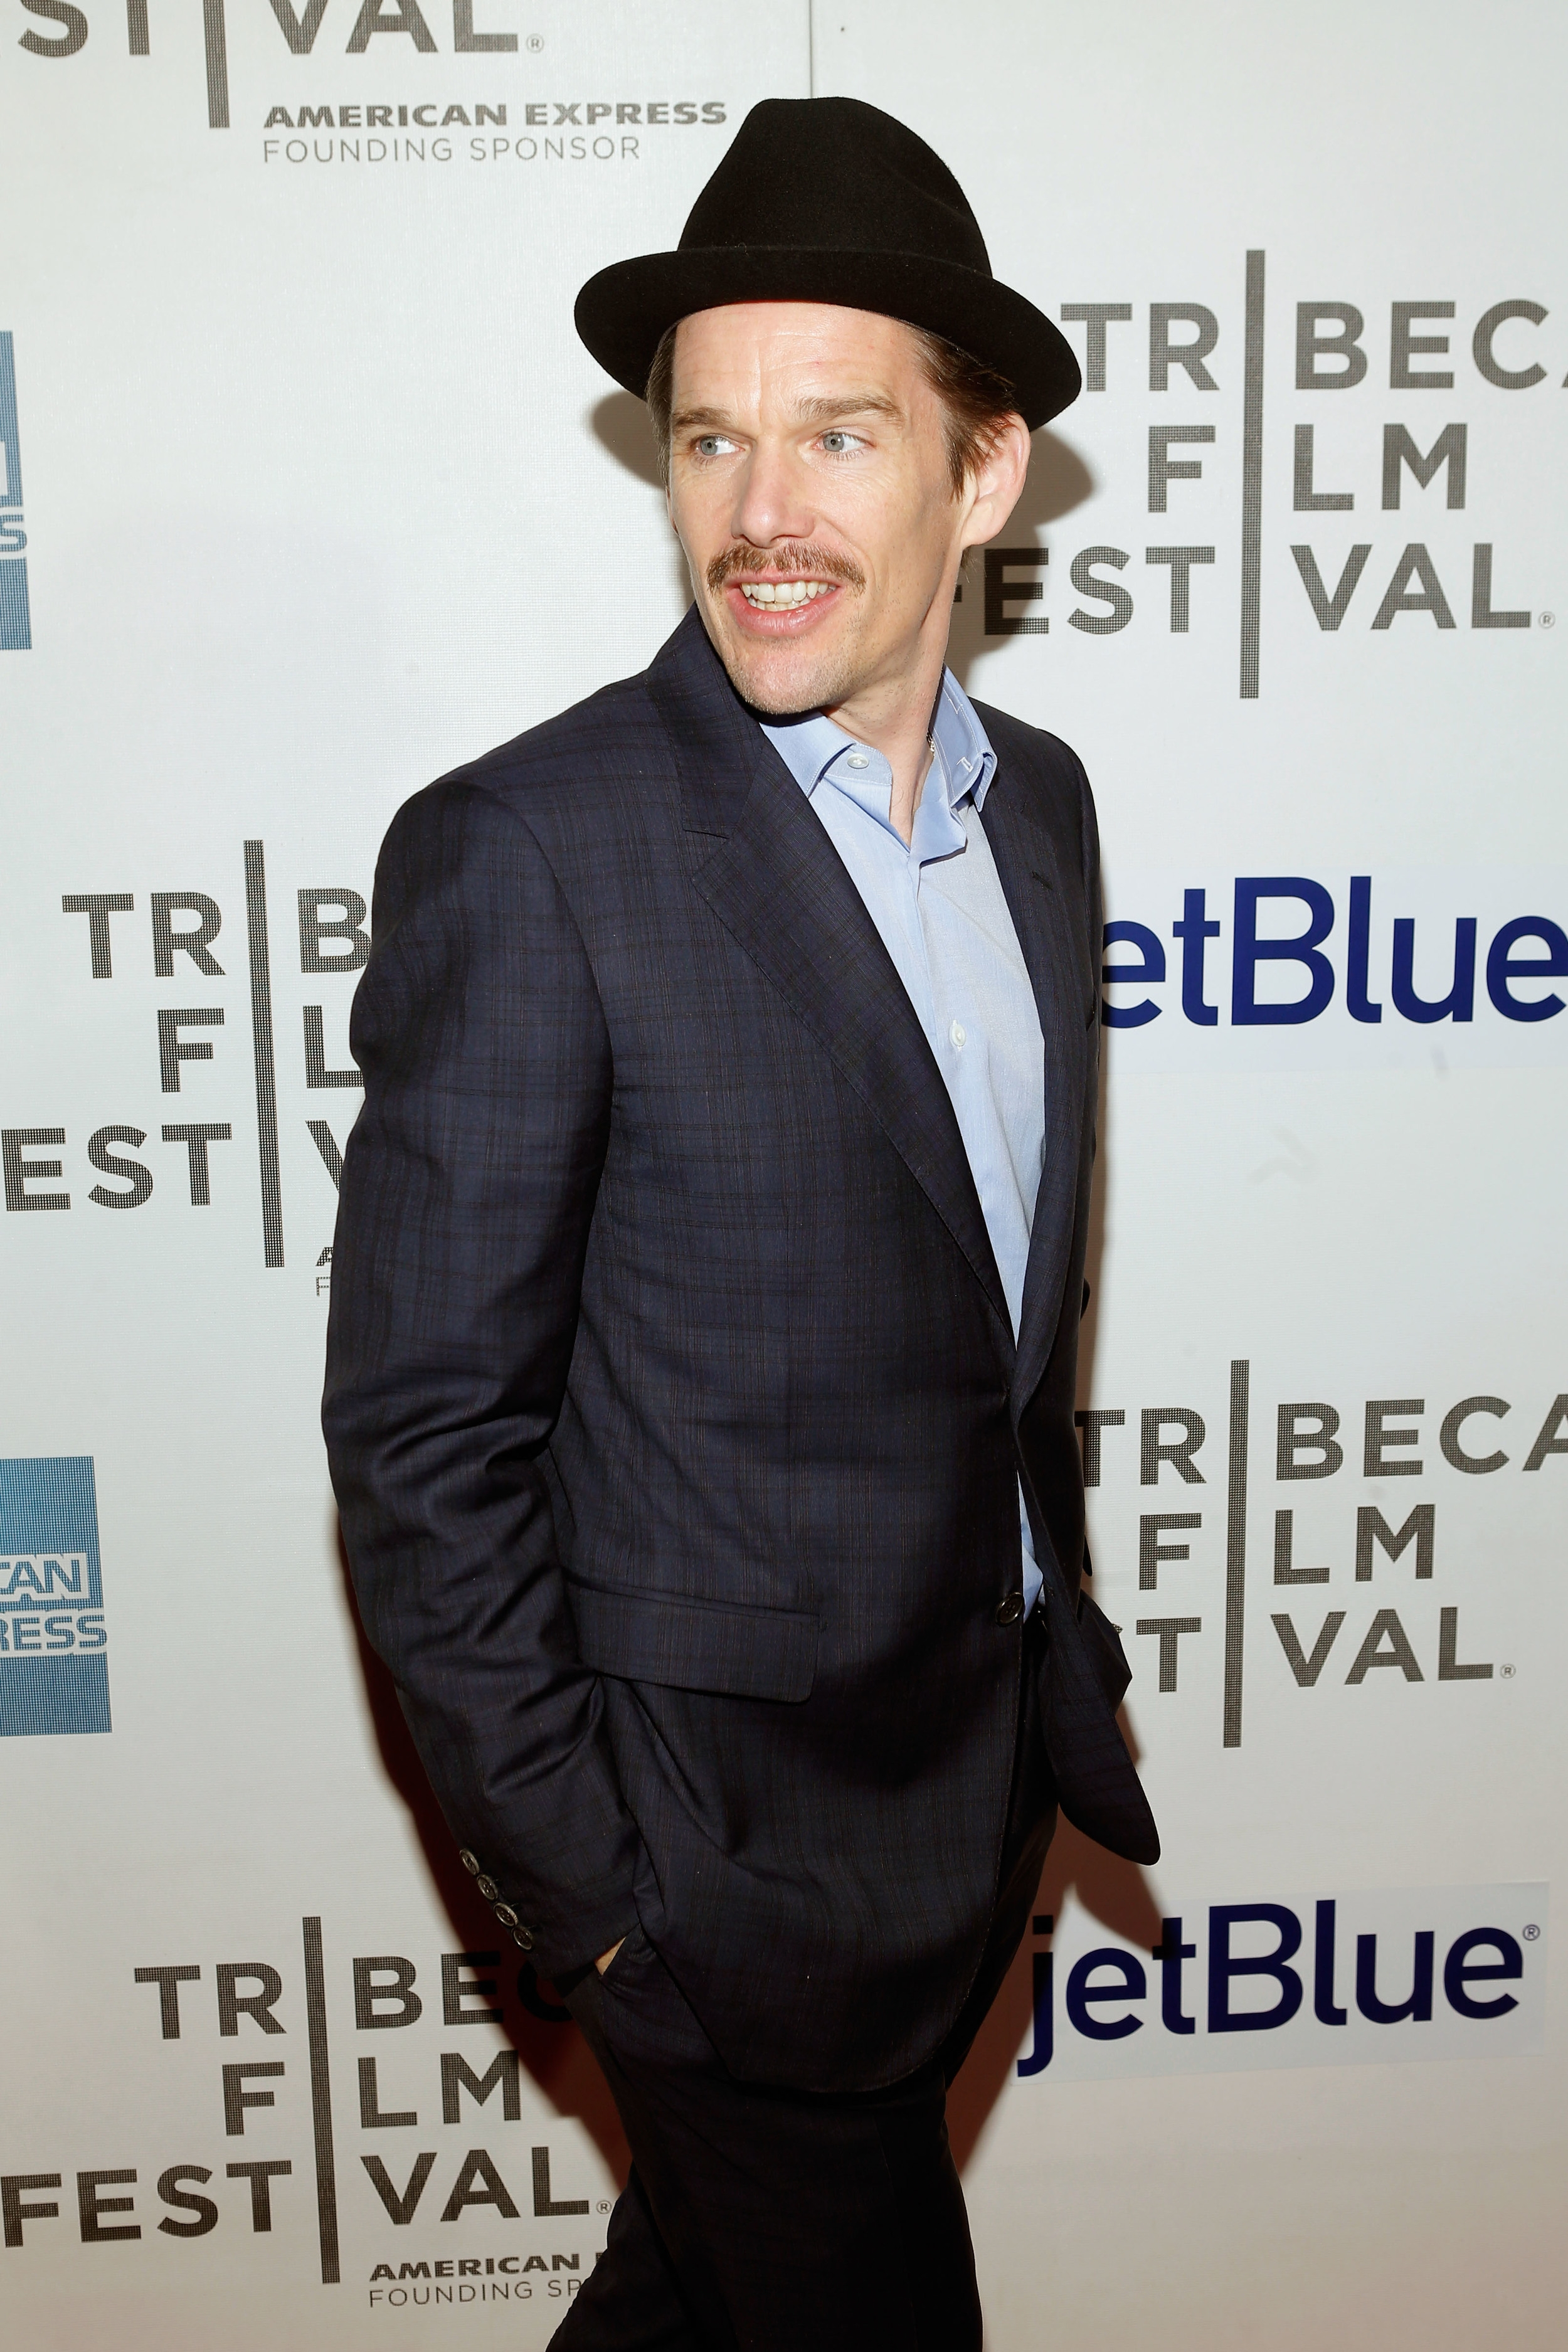 Ethan-Hawke-wore-fedora-premiere-Before-Midnight.jpg